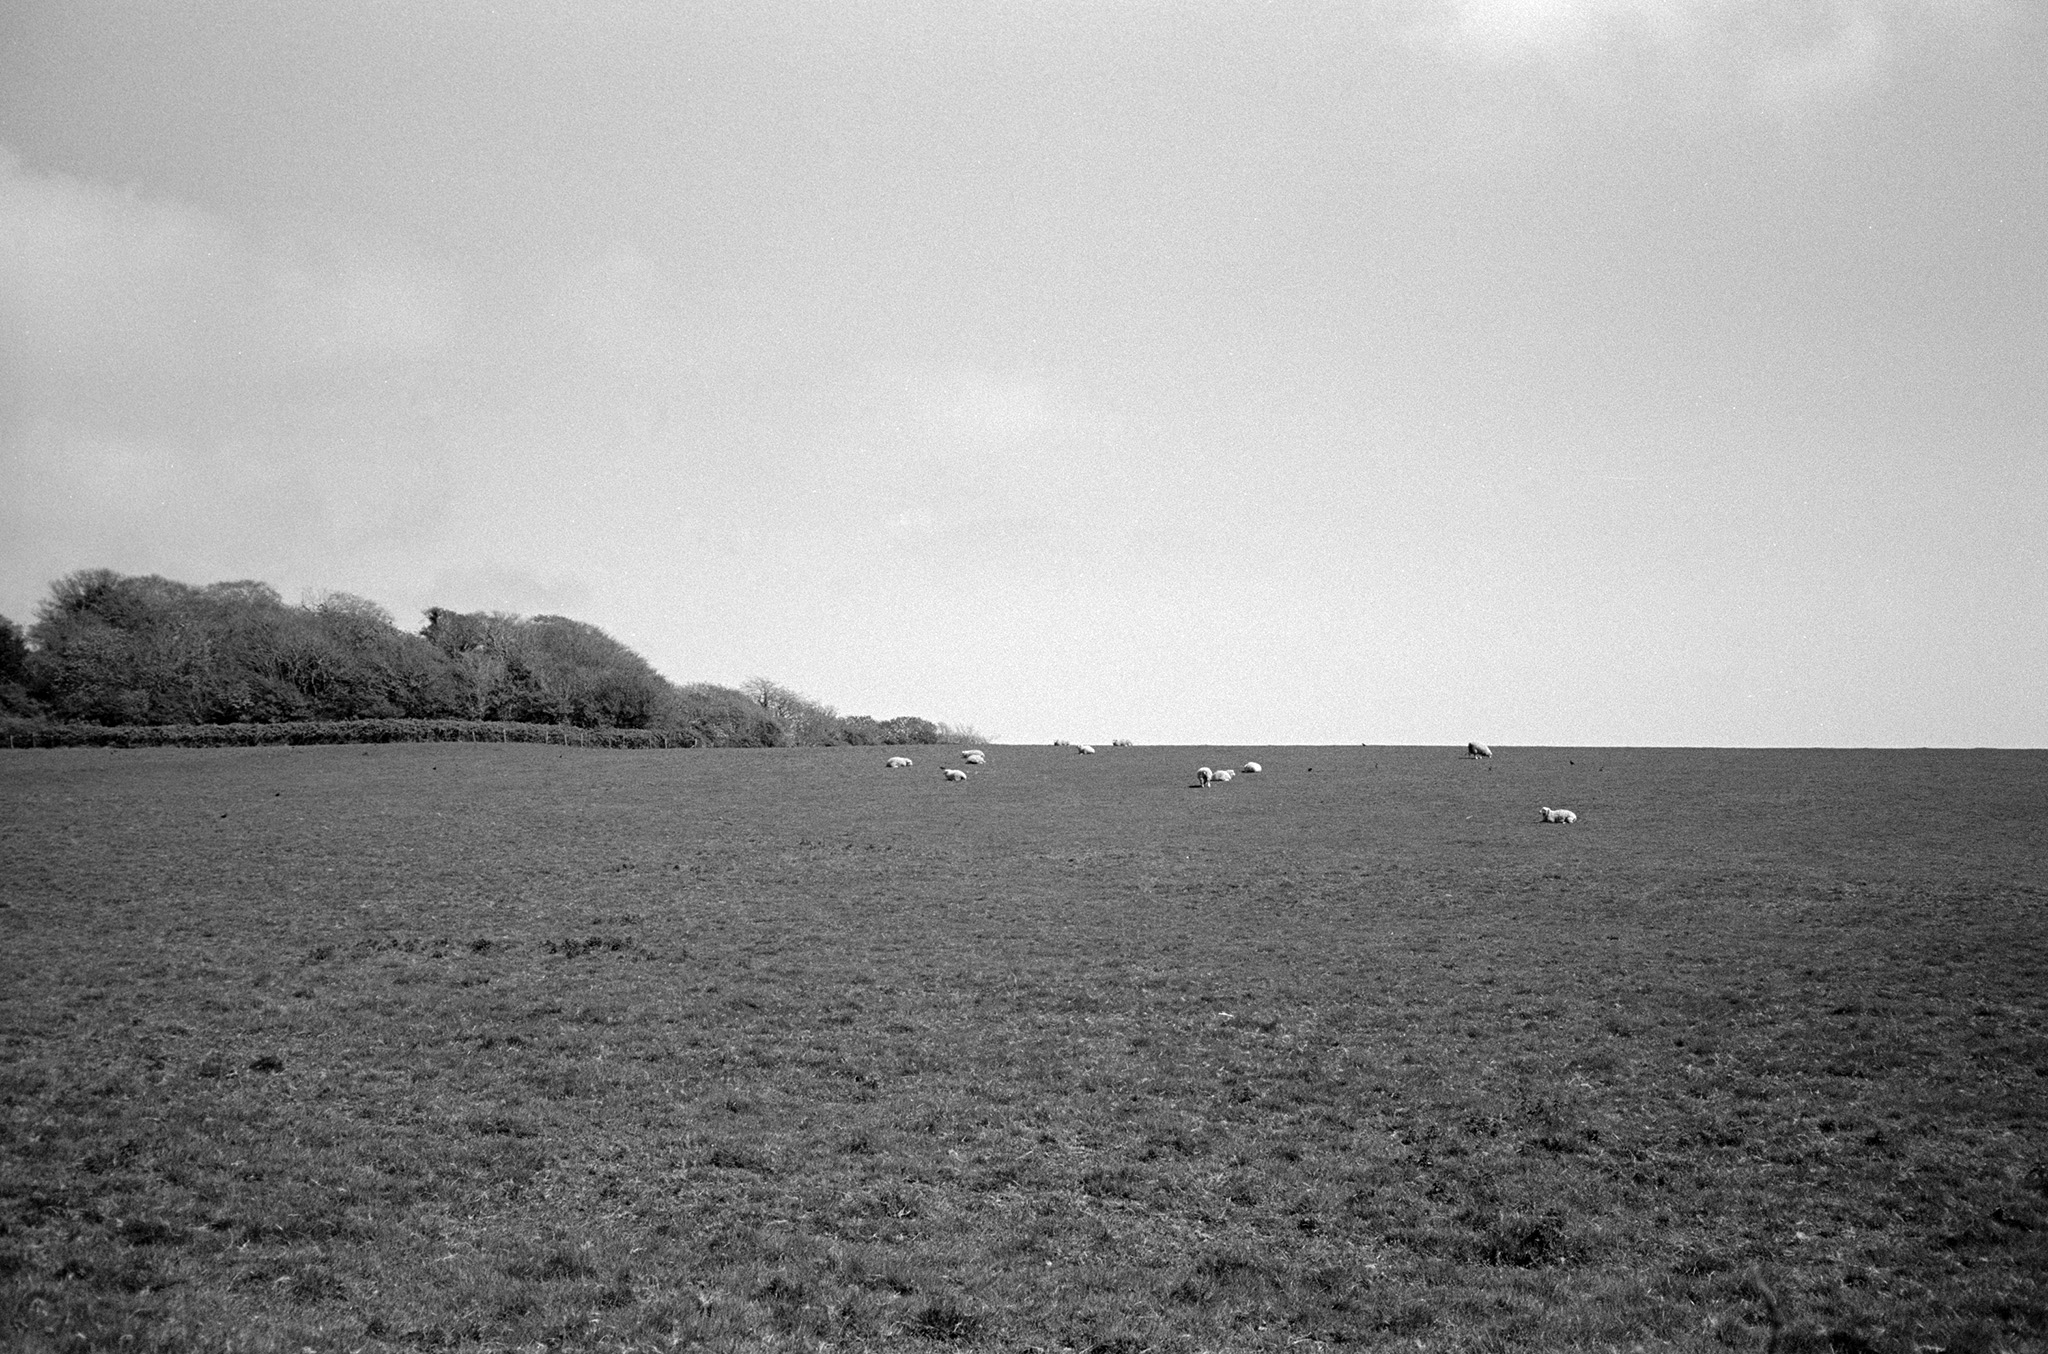 Adox Silvermax 100 Film Review Shot on a Contax T3